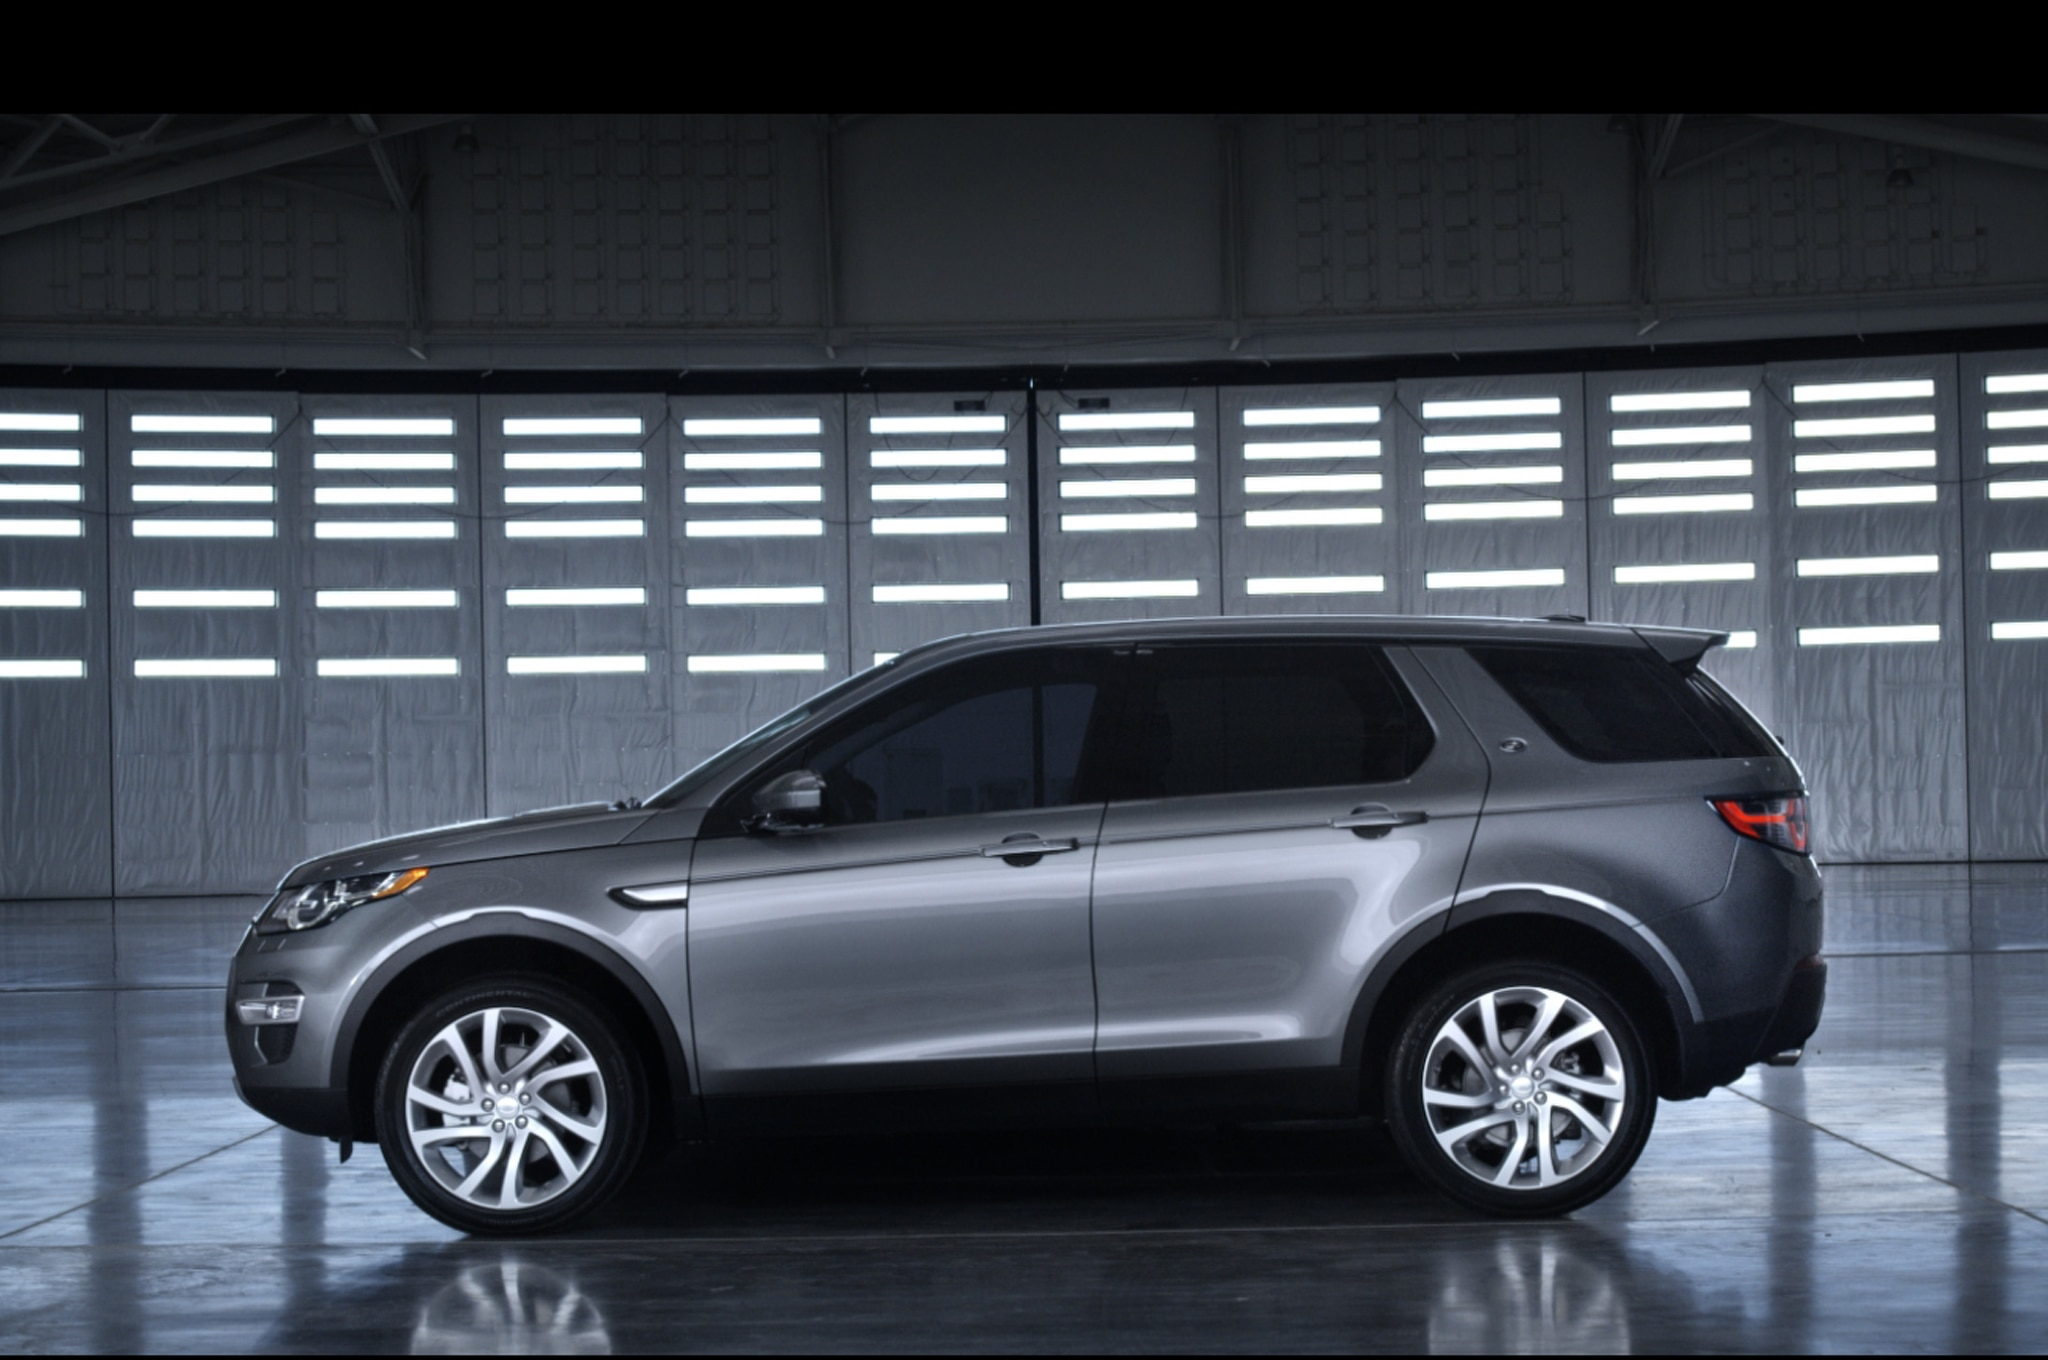 2015 Land Rover Discovery Sport Pricing, Options Confirmed